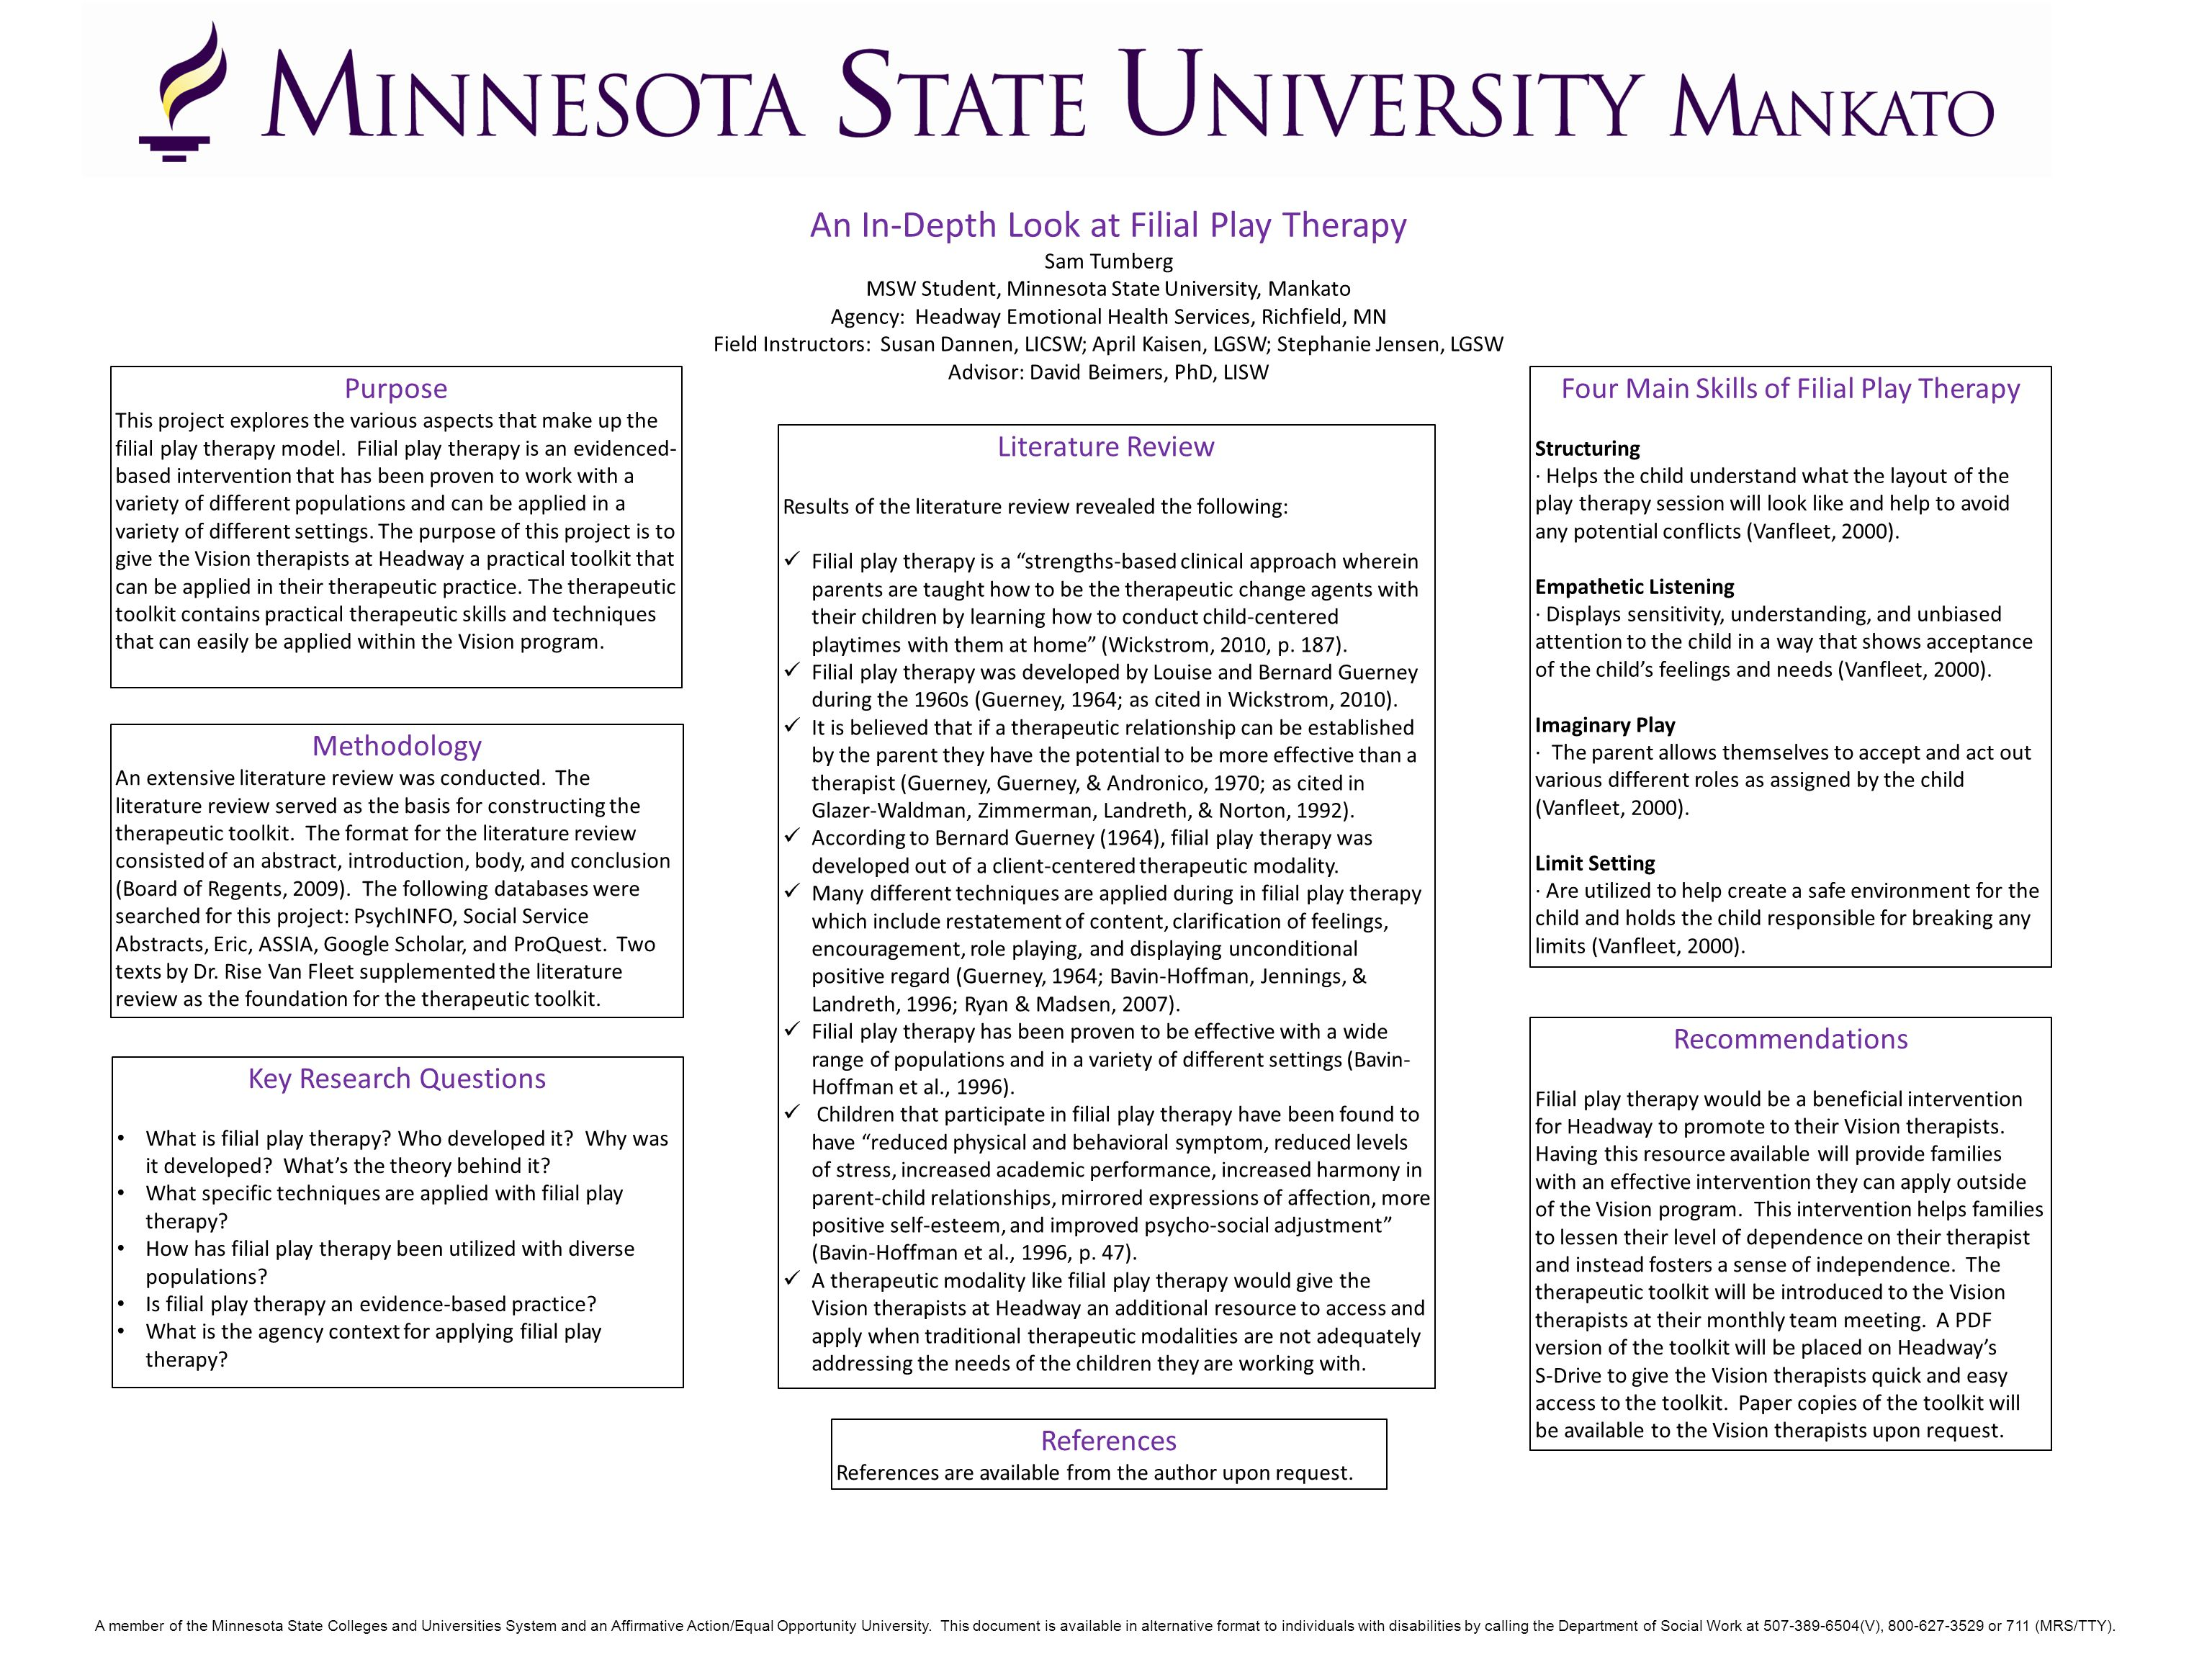 An In-Depth Look at Filial Play Therapy Sam Tumberg MSW Student, Minnesota State University, Mankato Agency: Headway Emotional Health Services, Richfi